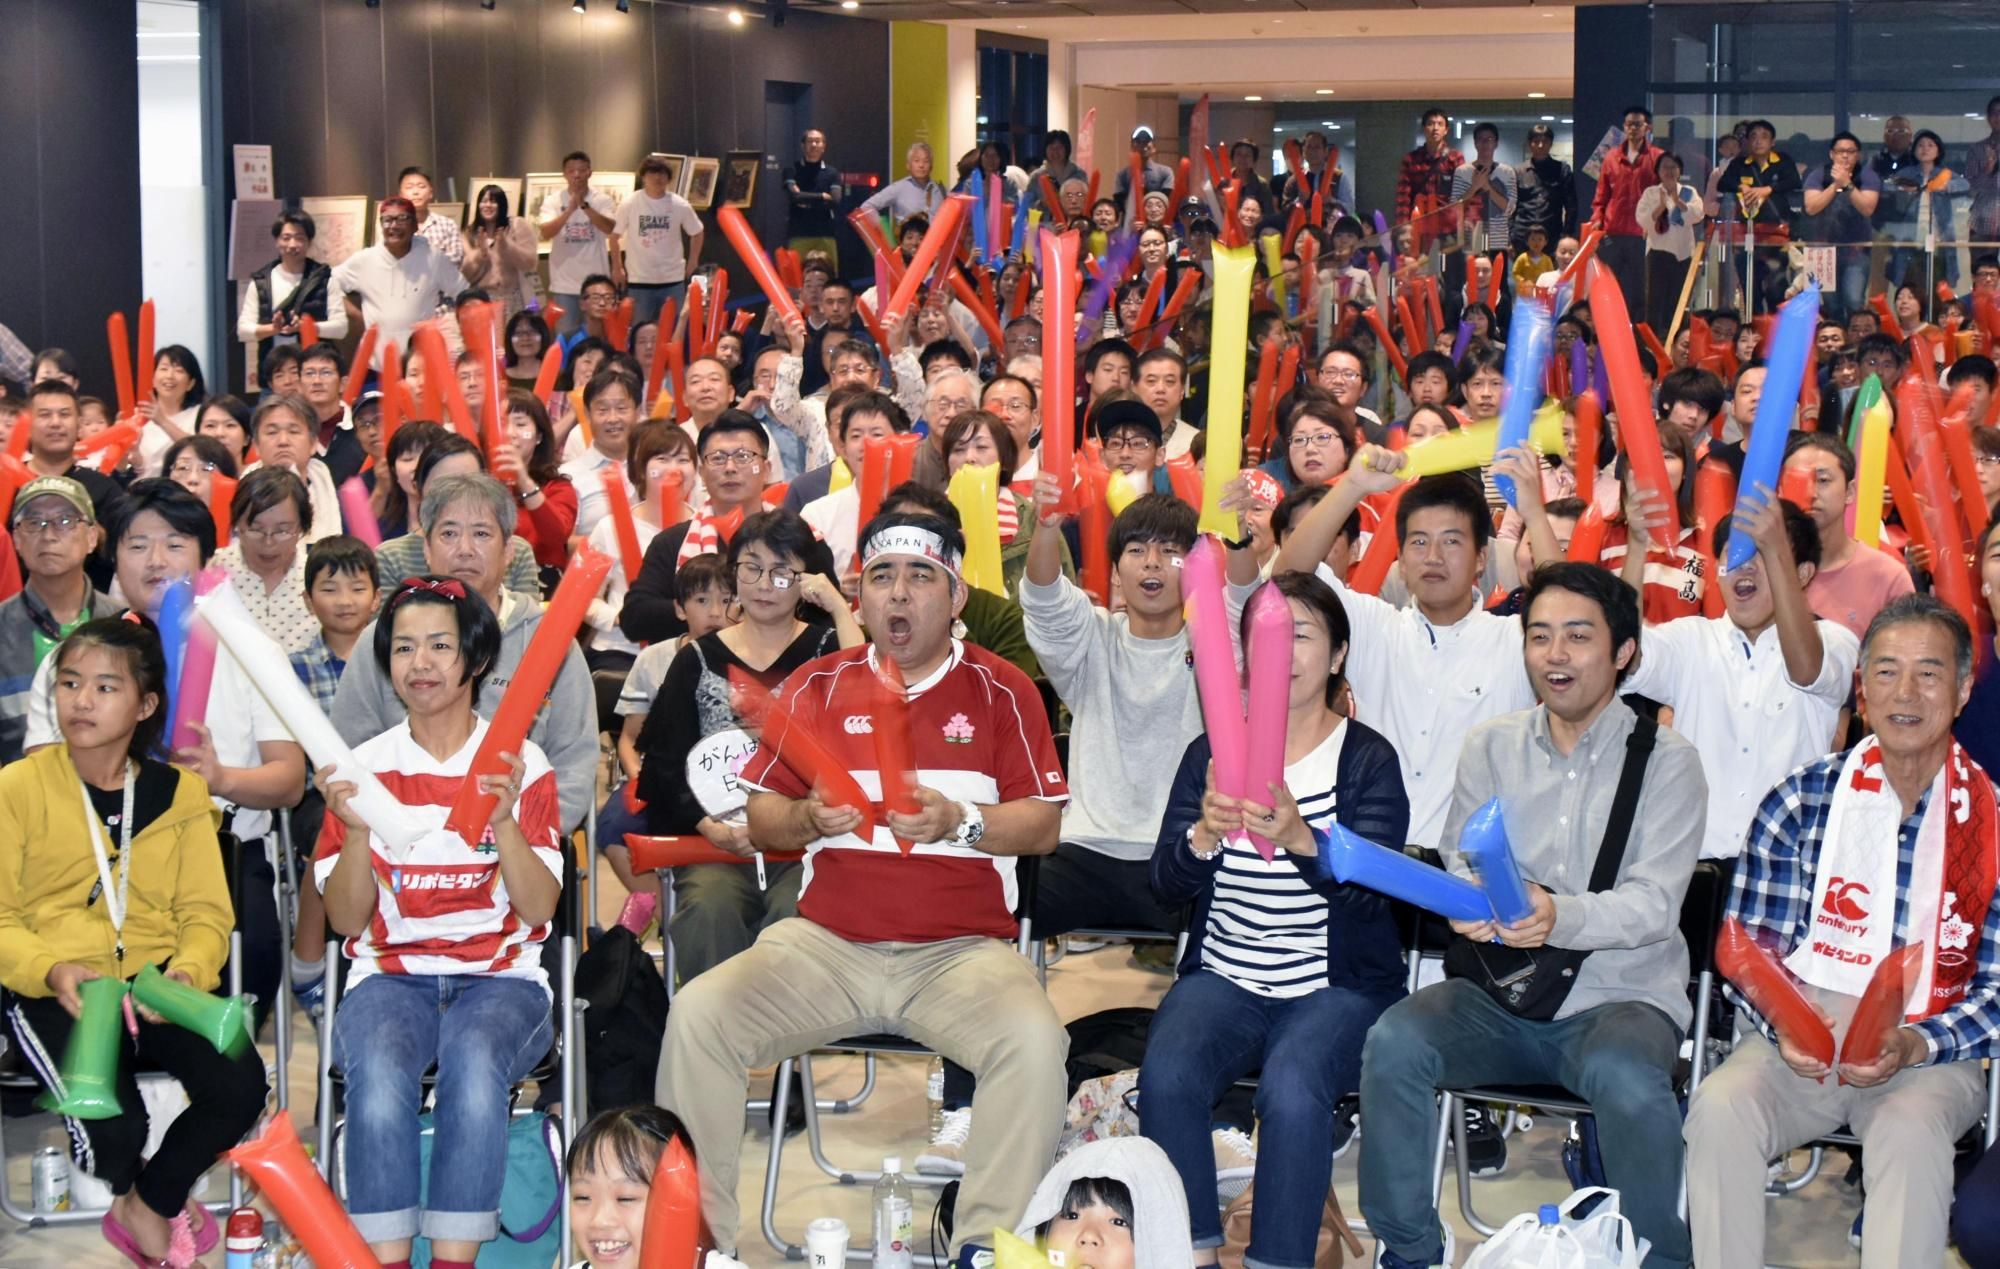 Japan supporters cheer at a public screening in the city of Koga, Fukuoka Prefecture, during the Rugby World Cup quarterfinal against South Africa on Sunday. | KYODO